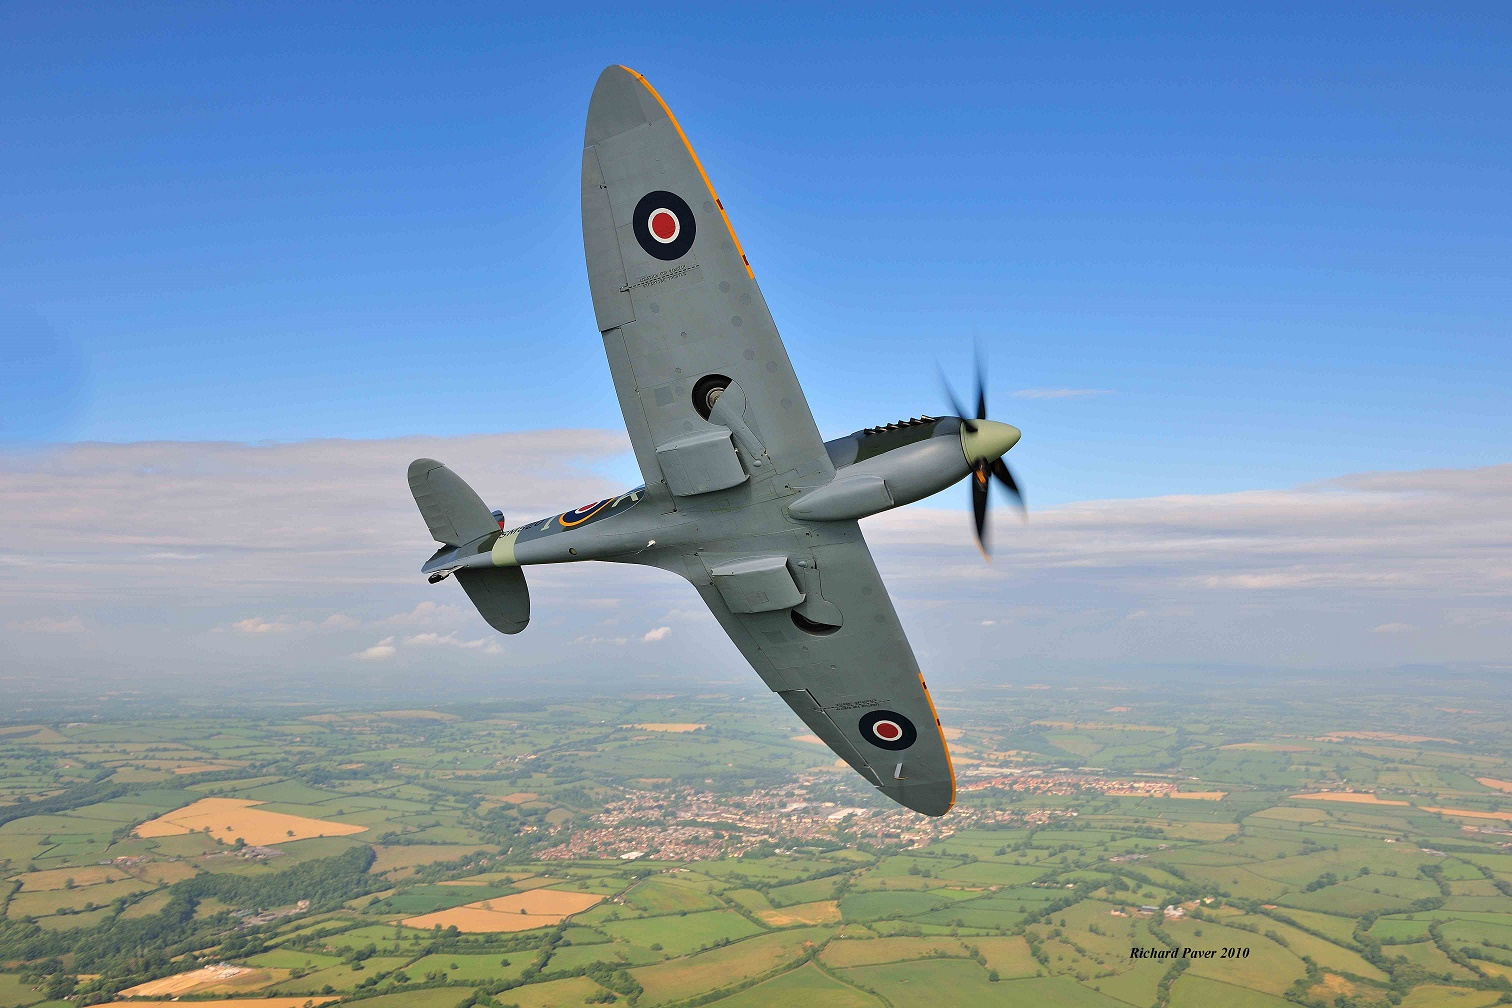 Spitfire G-ILDA break July 2010